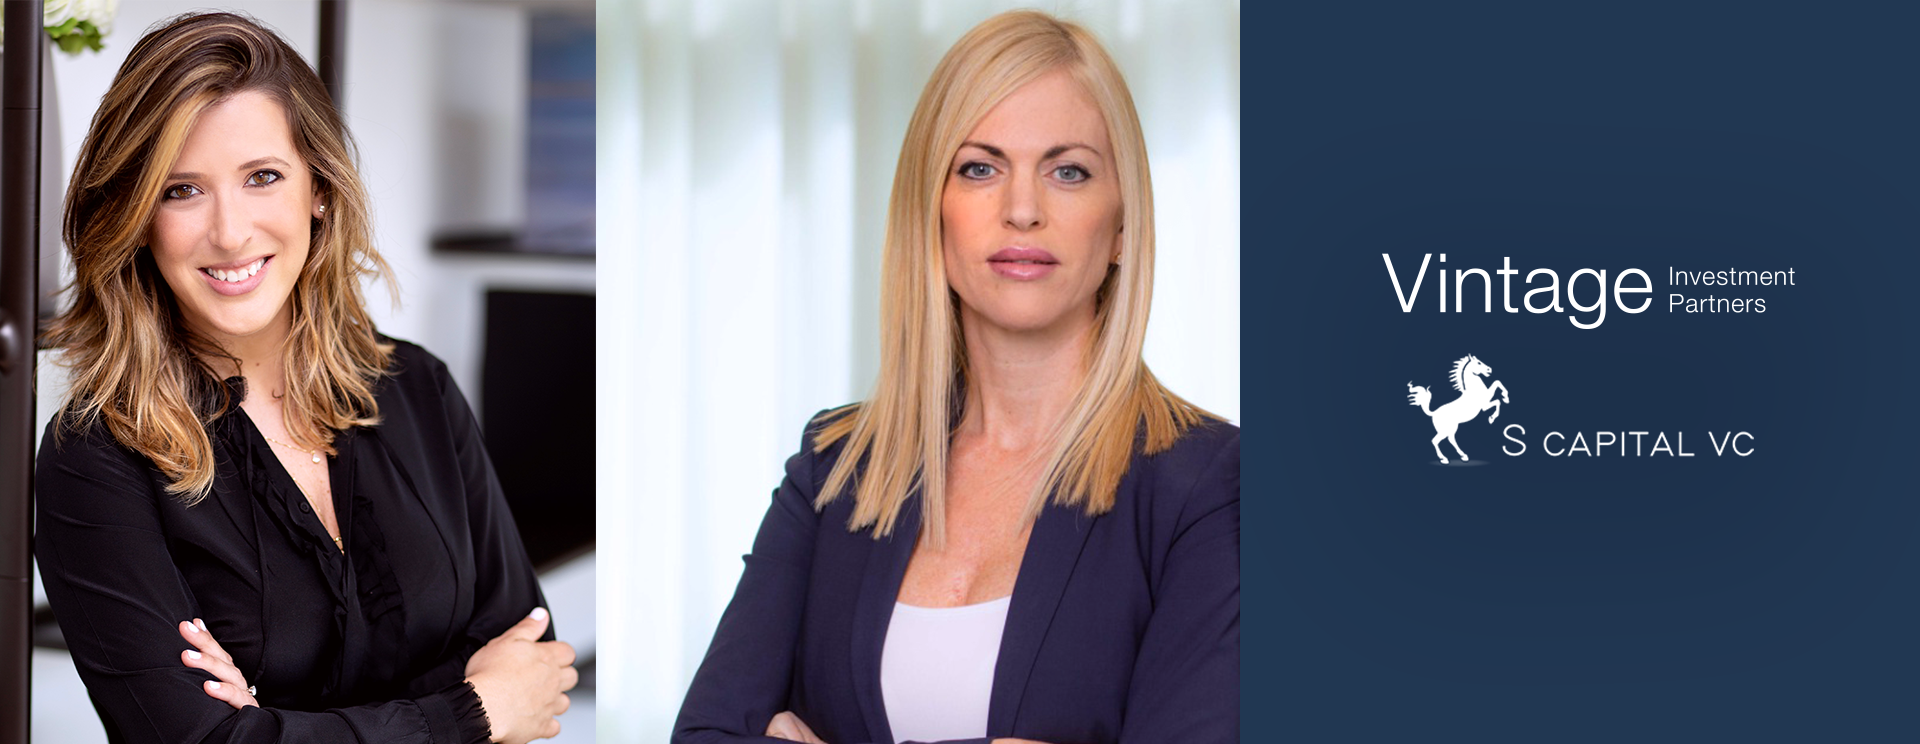 Spotlight: Exceptional Women- interview with Aya Peterburg, Founder & Managing Partner at S Capital